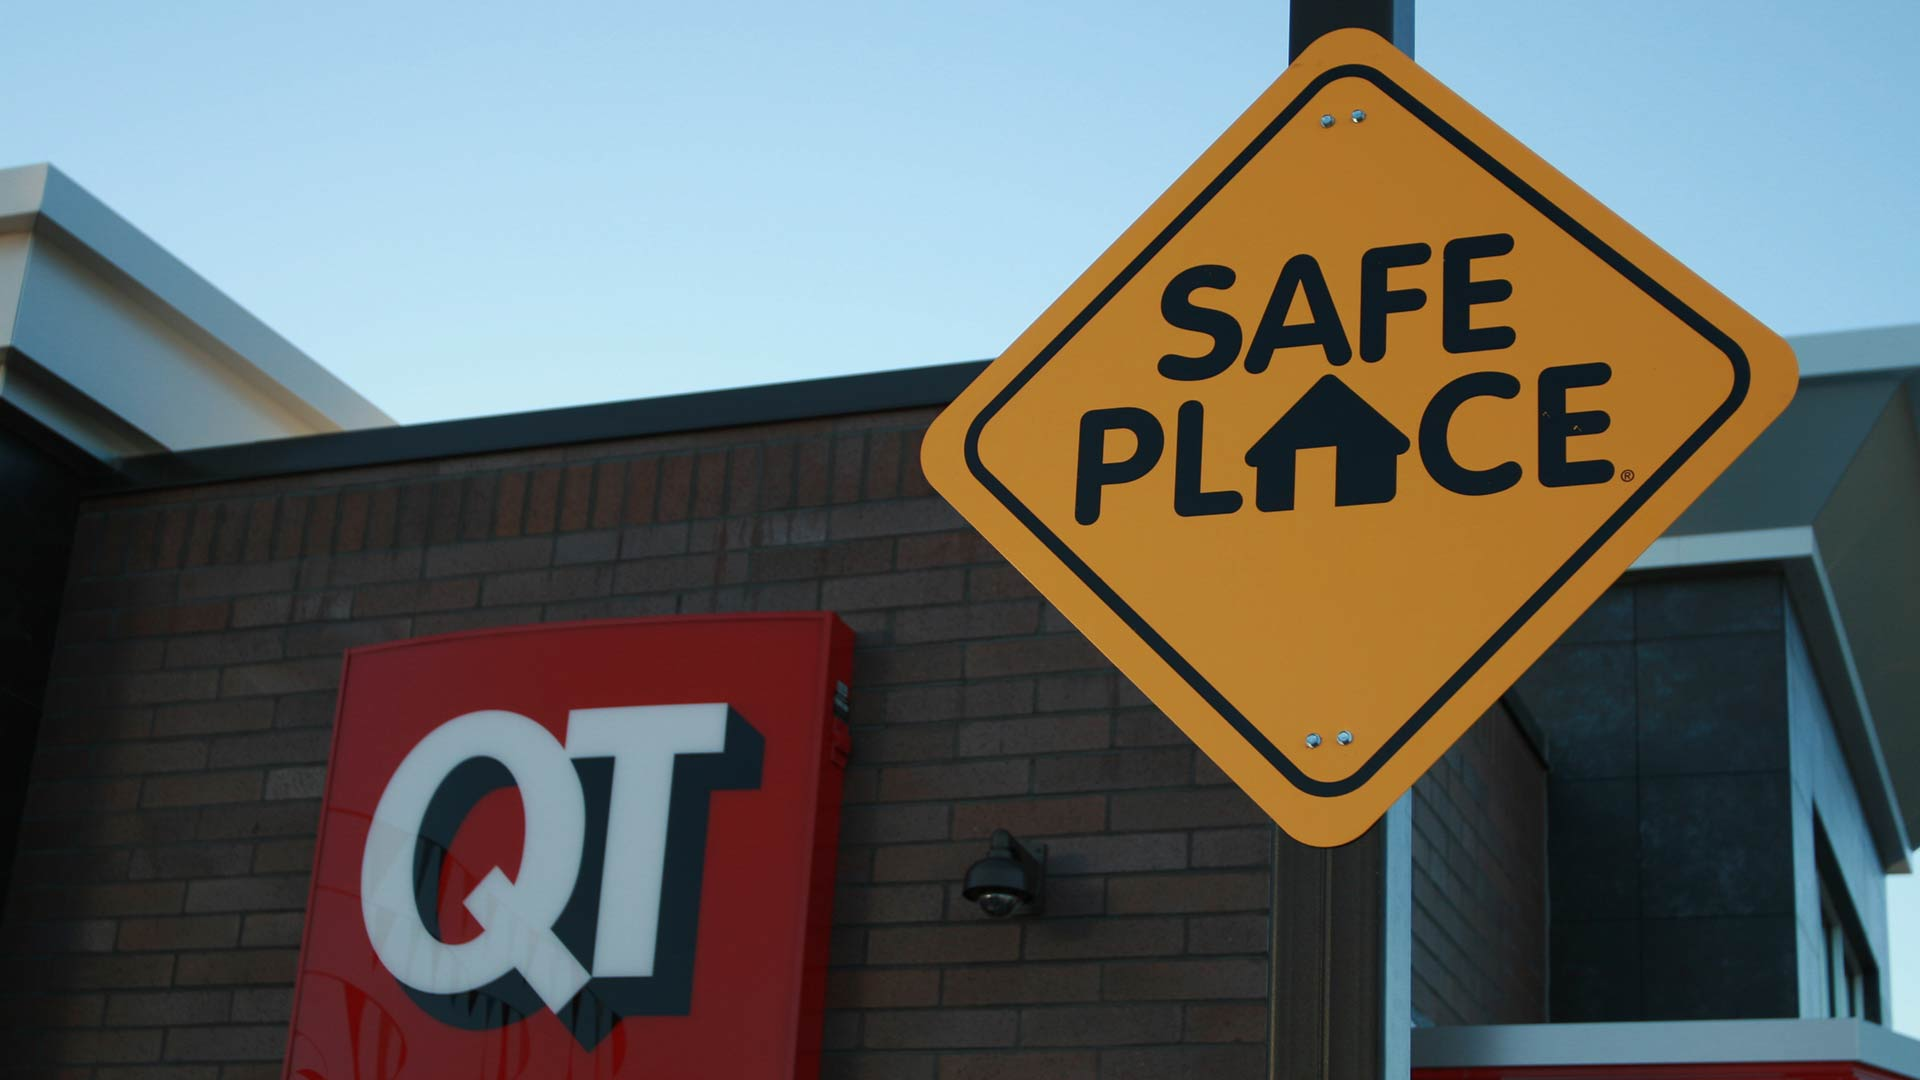 QuikTrip is working with Safe Place to receive homeless youth who may be in need of help.